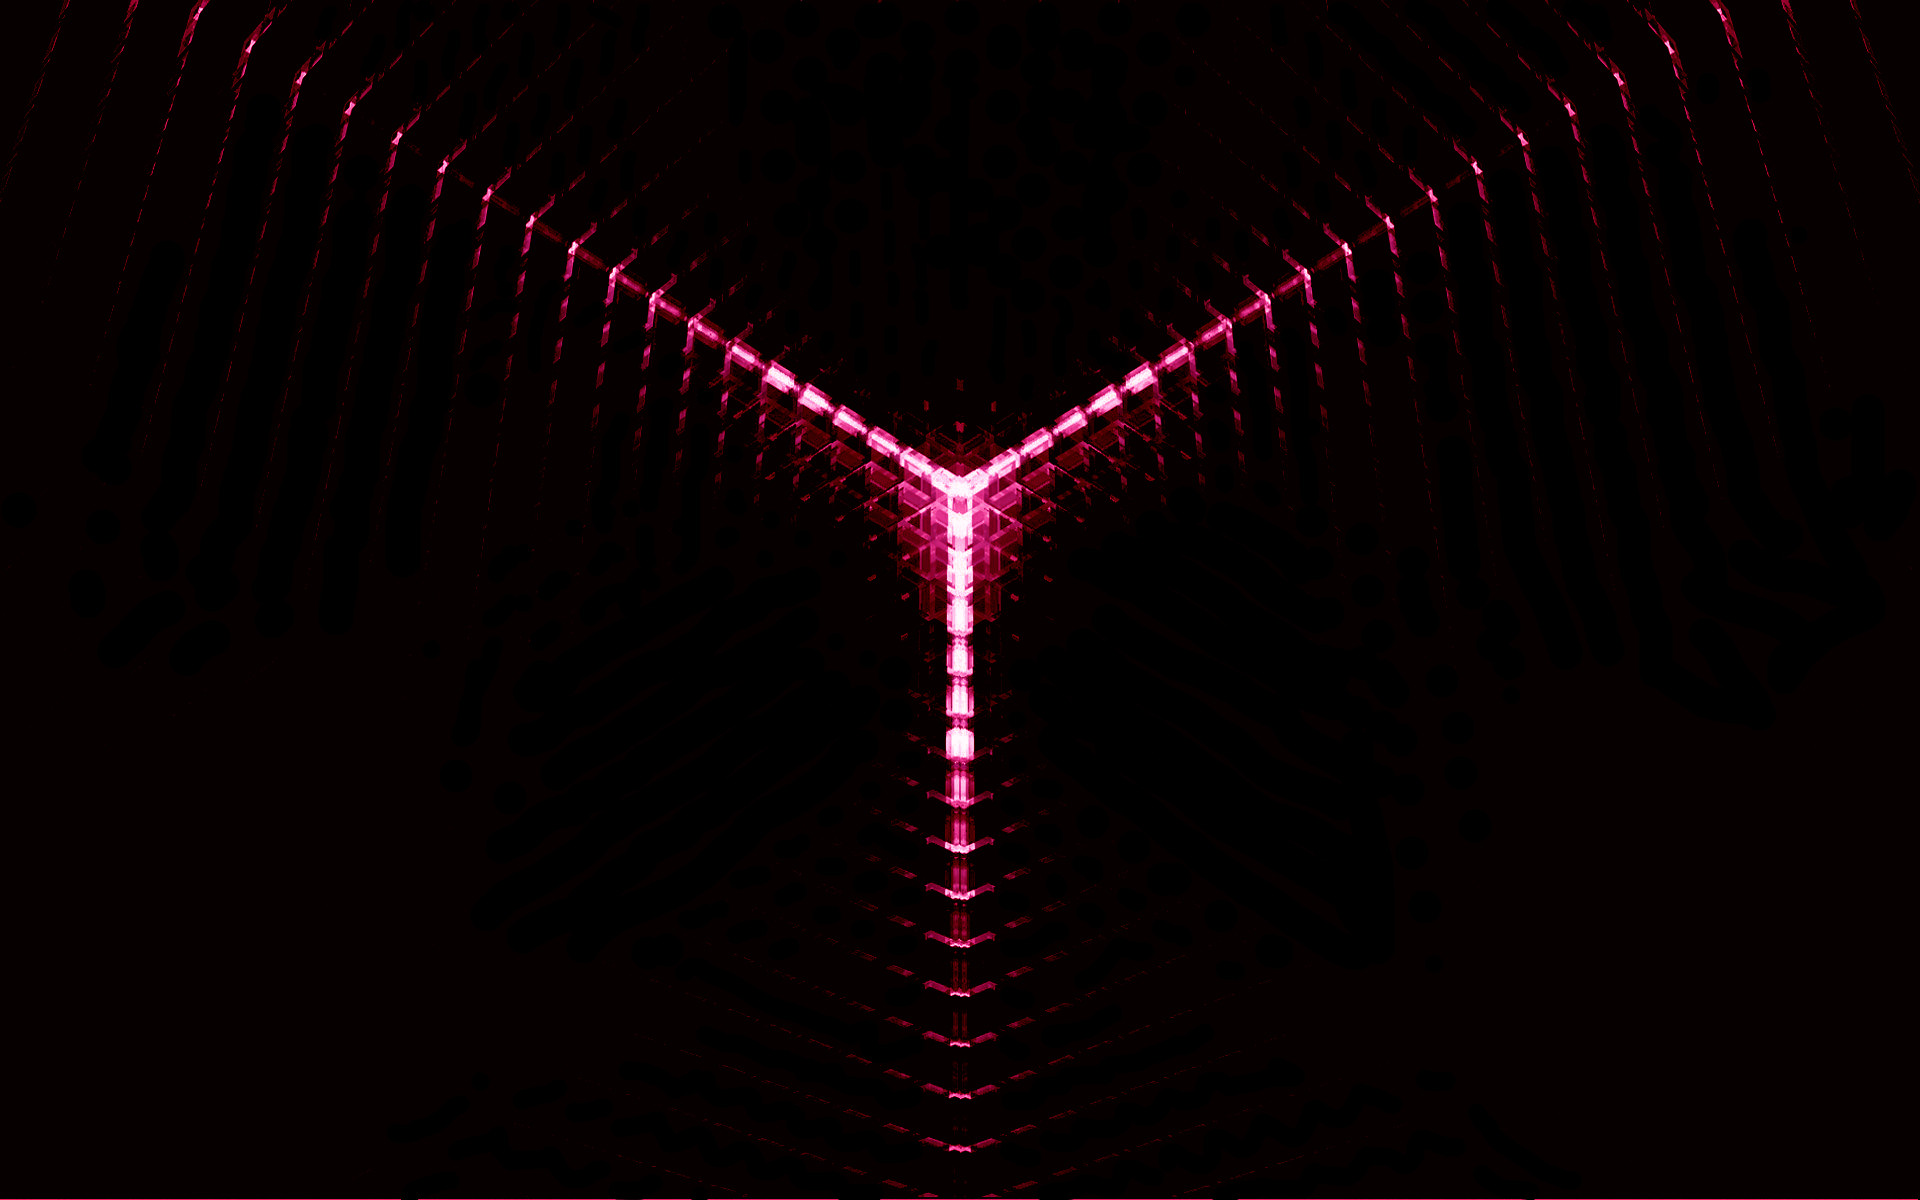 1920x1200 Bild: Rote Neon Lights wallpapers and stock photos. Â«